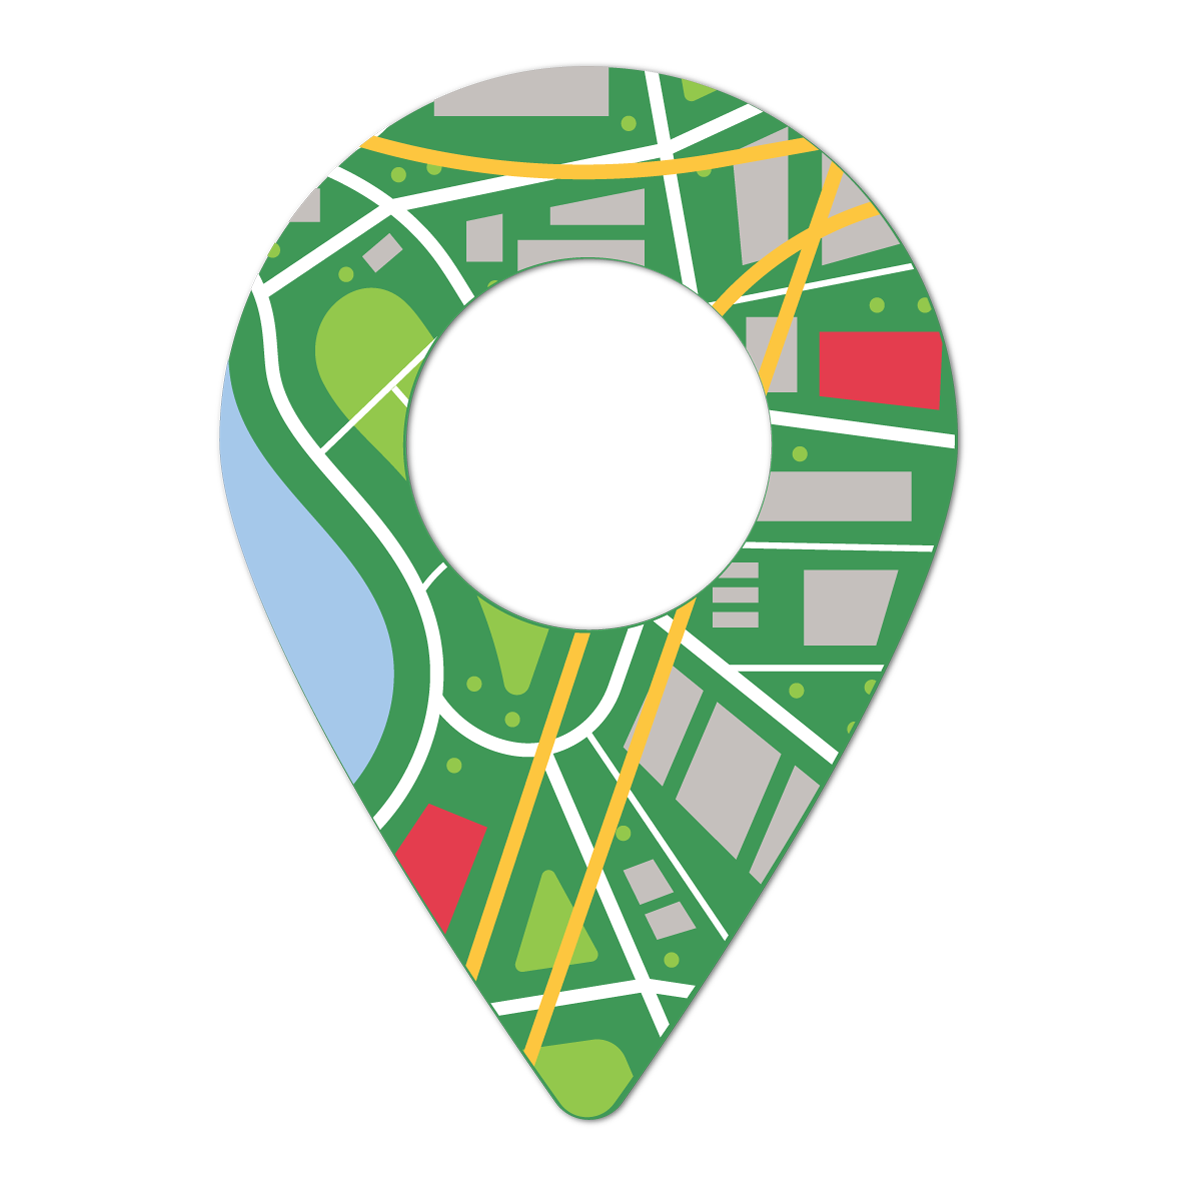 Shopify Google Maps app by Isenselabs